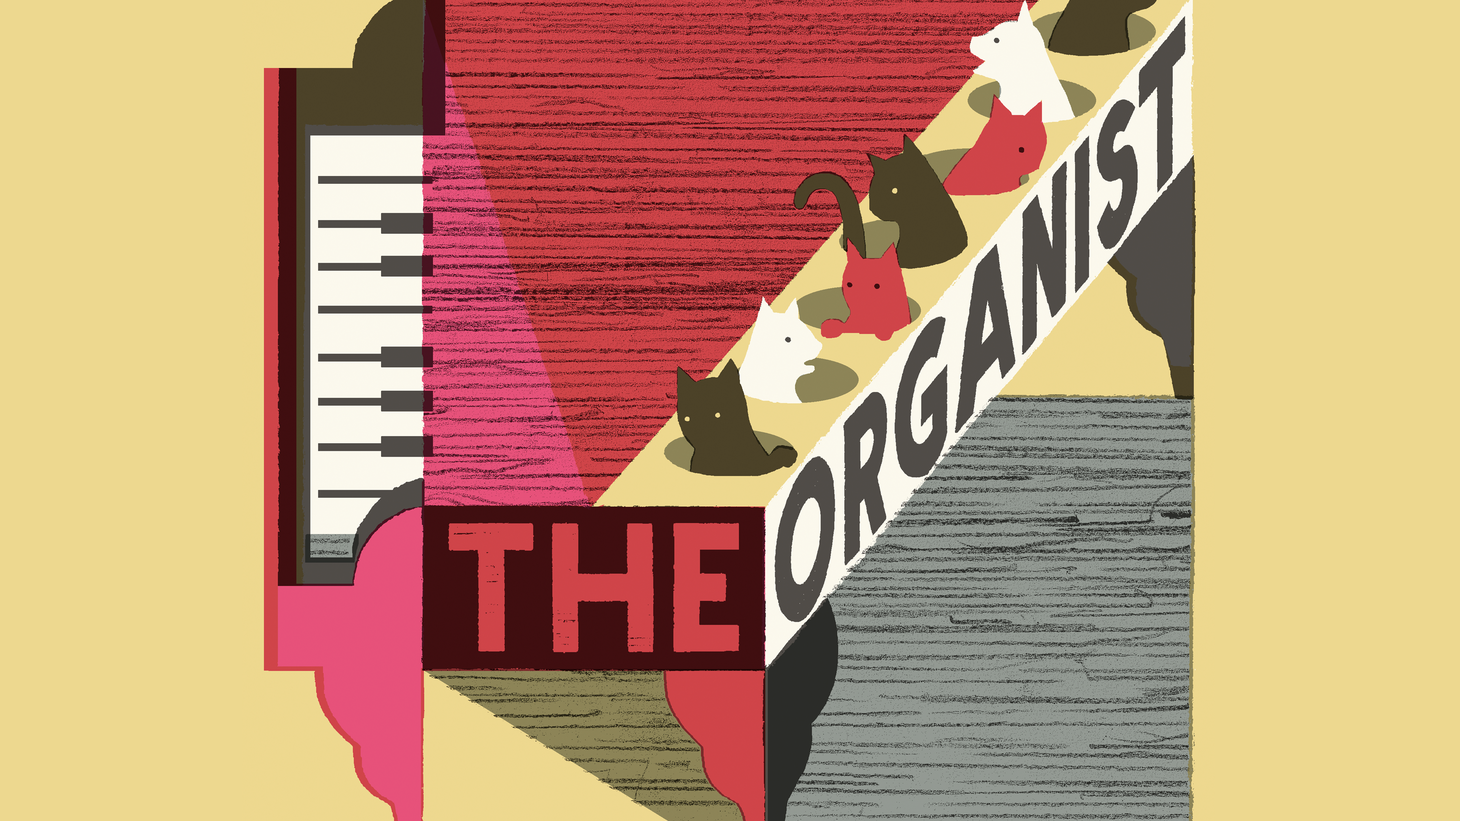 A special holiday presentation of The Organist, featuring some of the show's best stories.